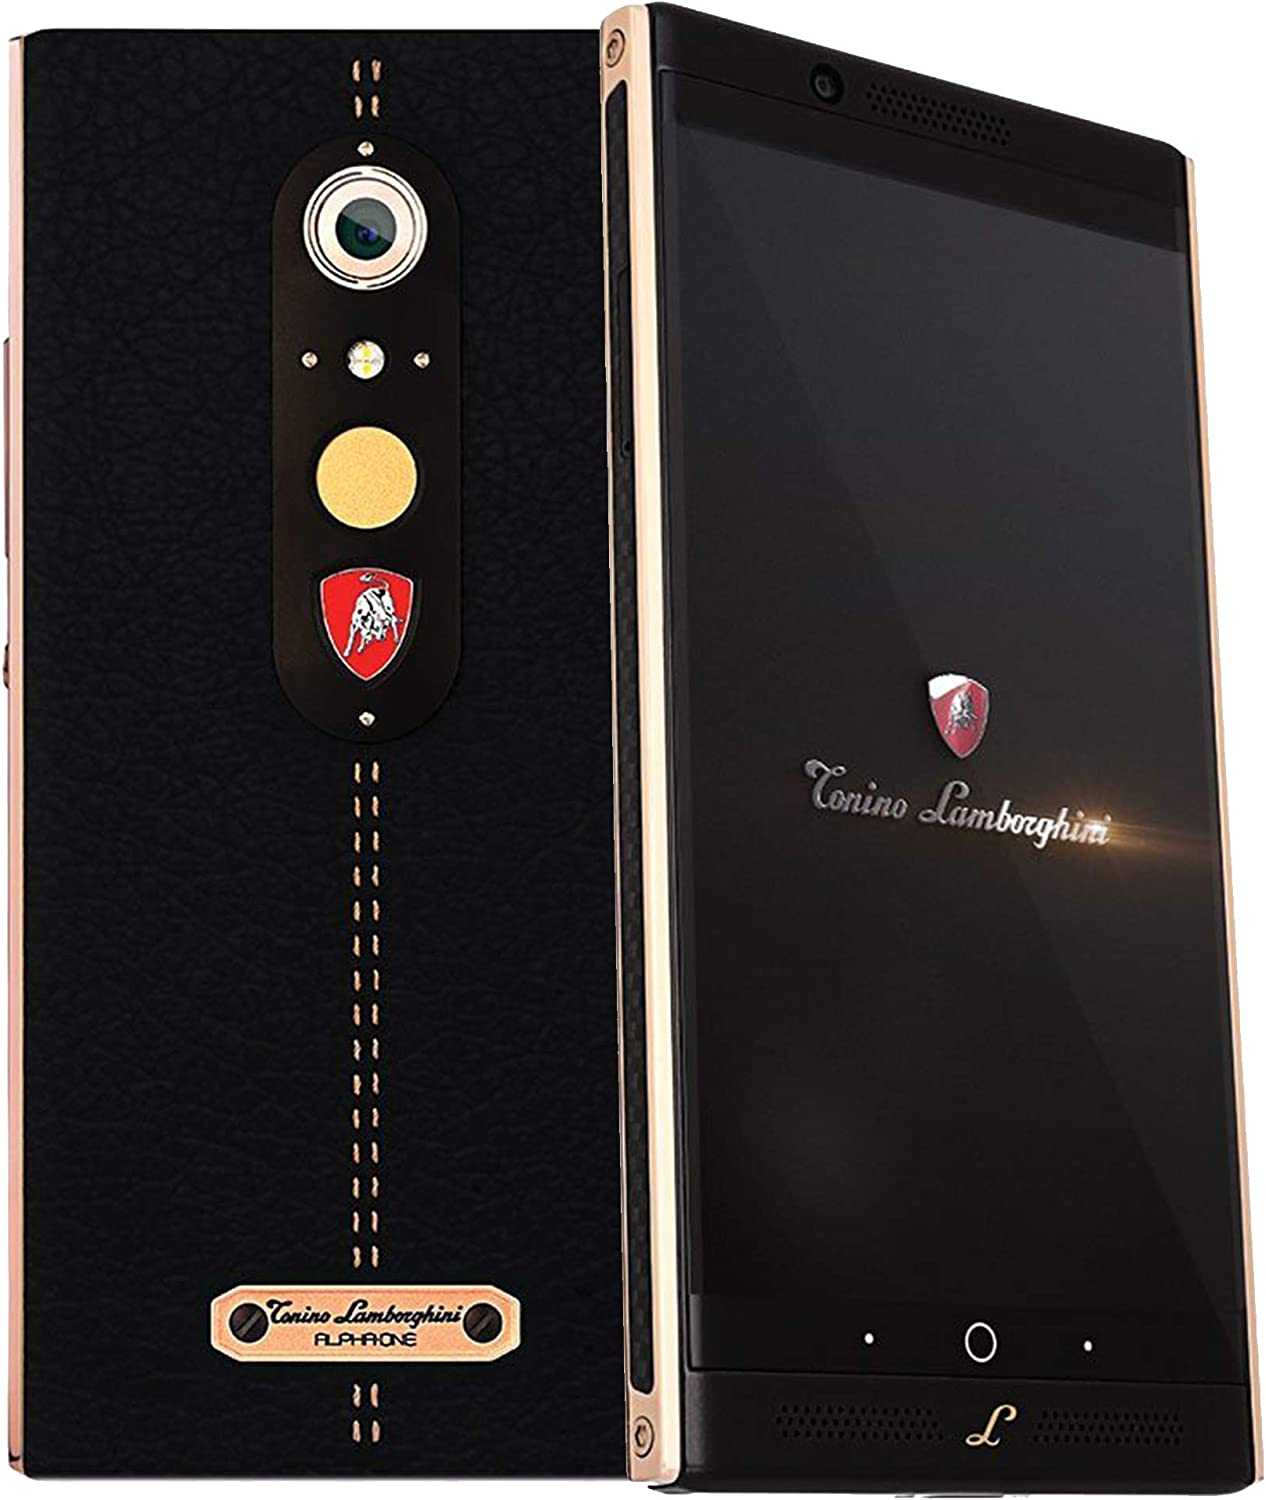 Tonino Lamborghini Alpha-One 64GB AMOLED 5.5-Inch SIM Free ...